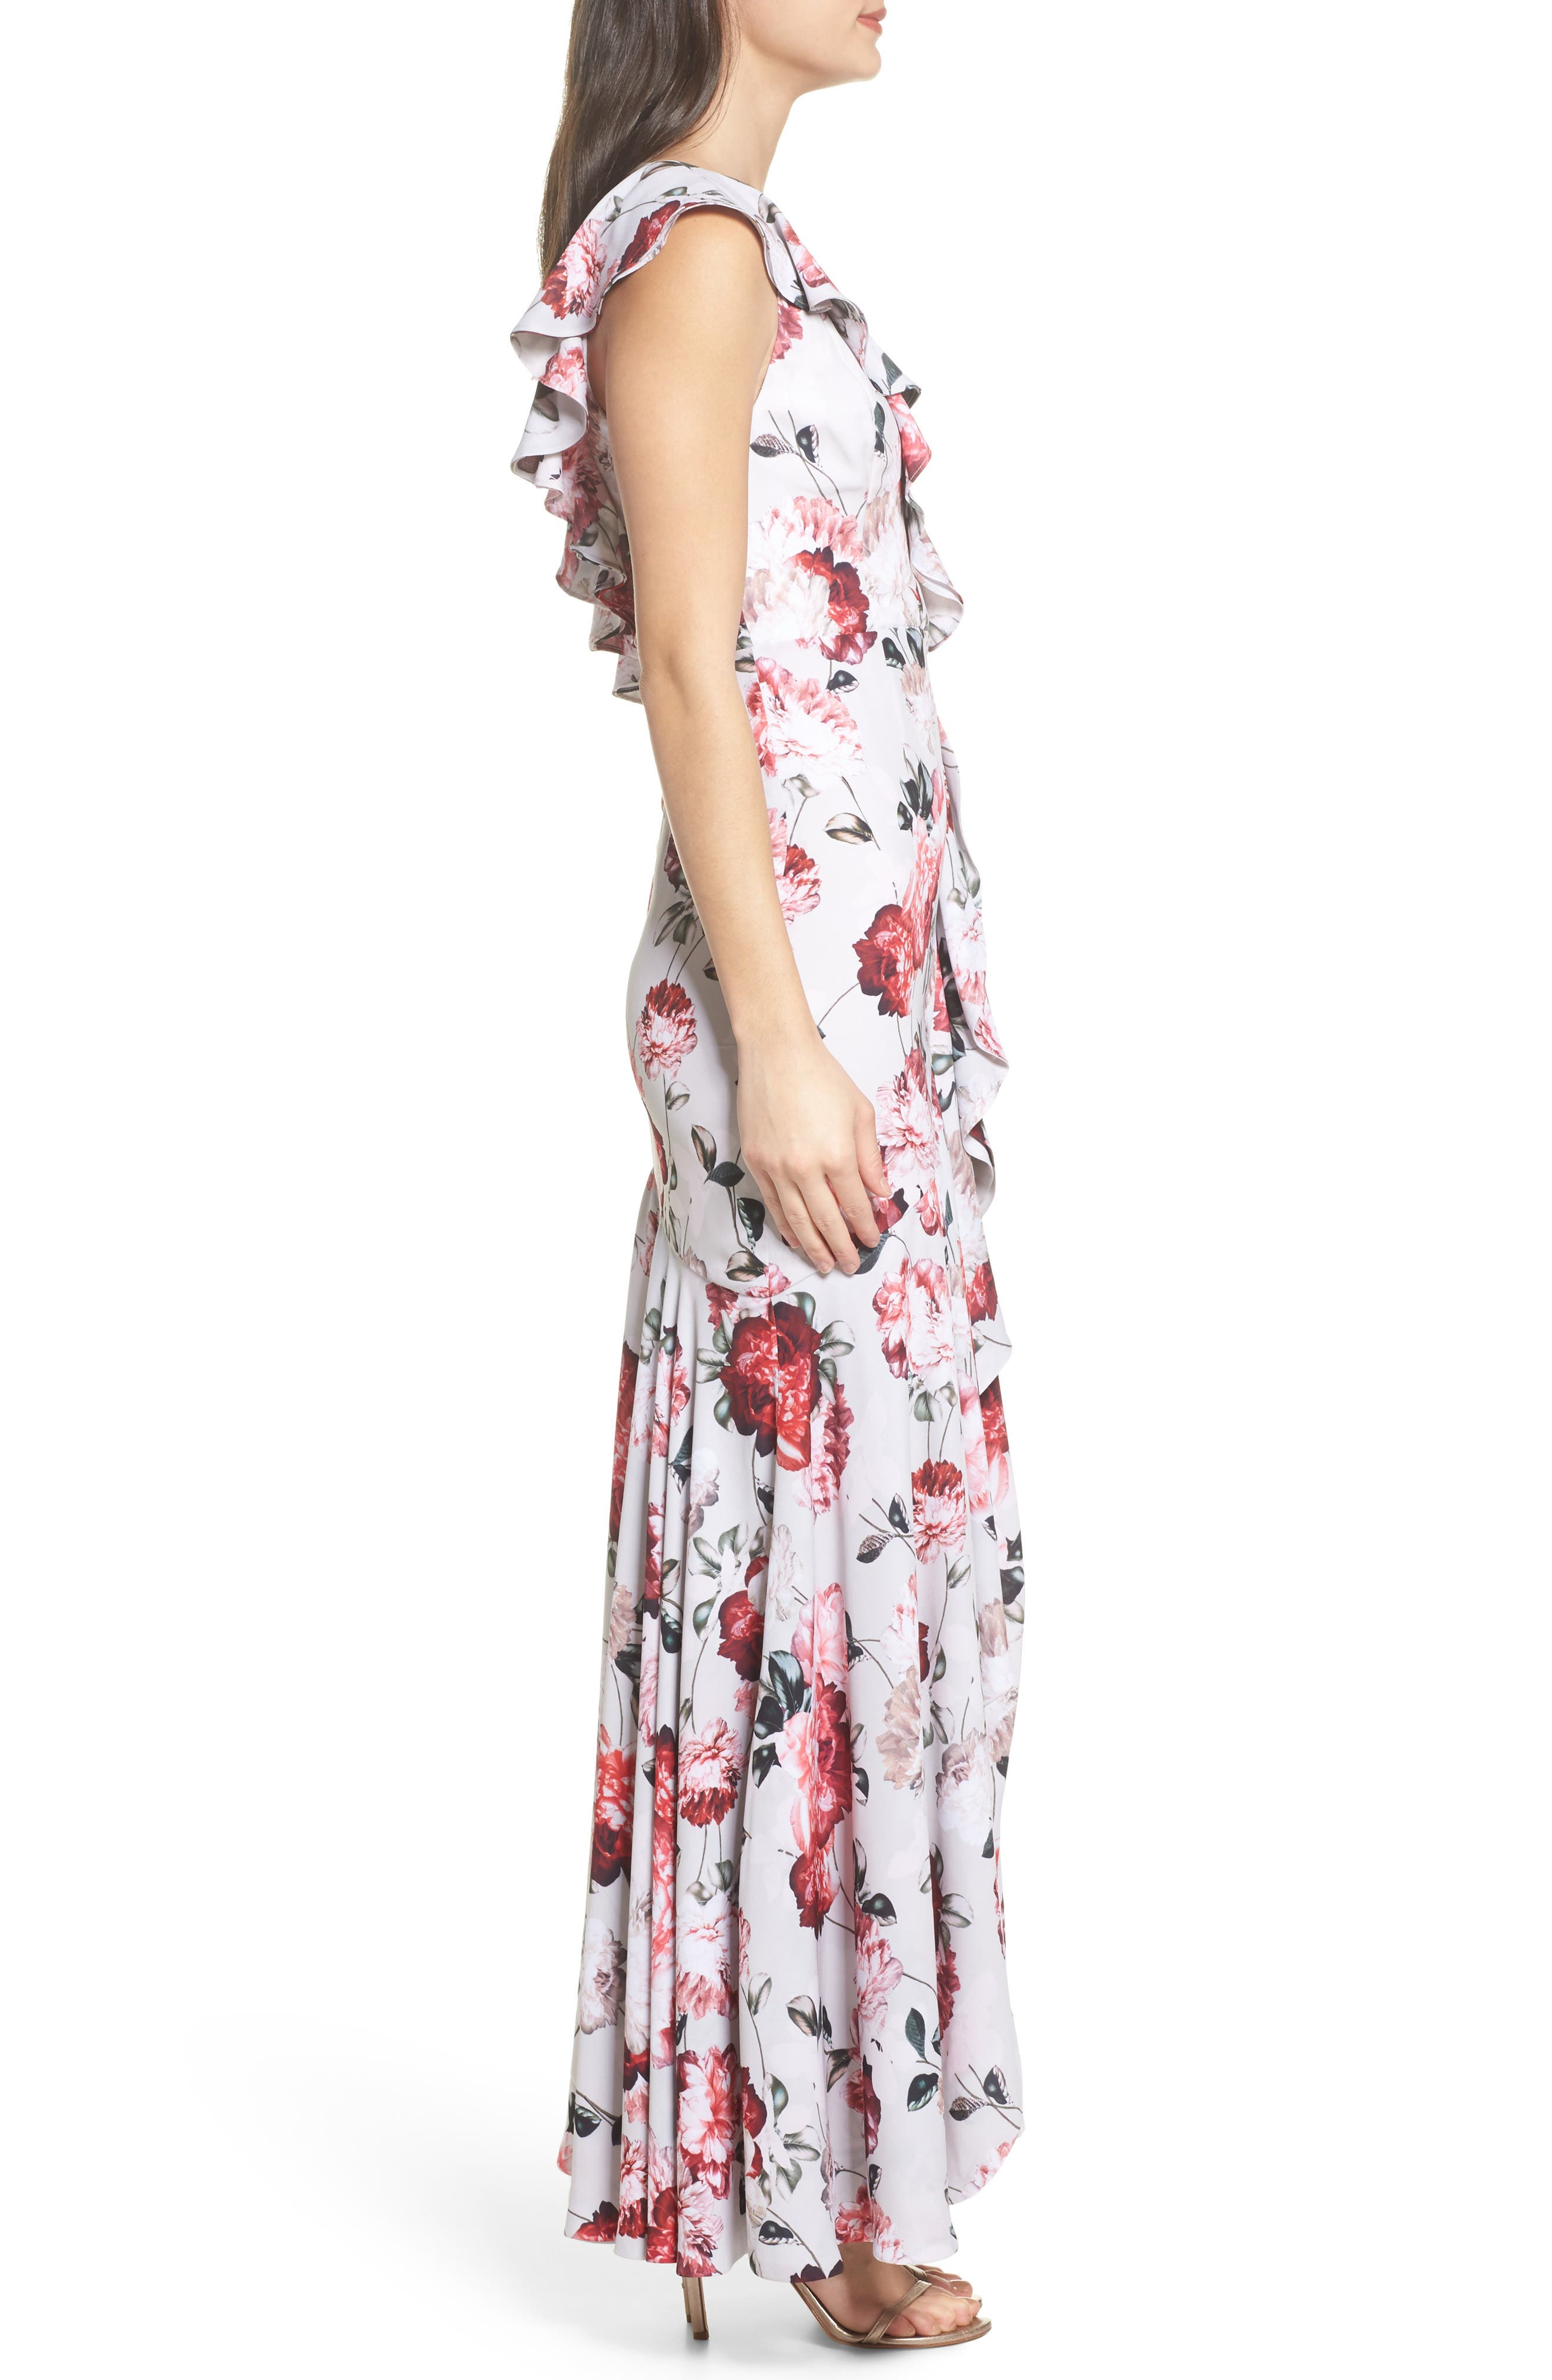 Beckman Floral Georgette Ruffle Maxi Dress,                             Alternate thumbnail 3, color,                             BLUSHING BLOOMS